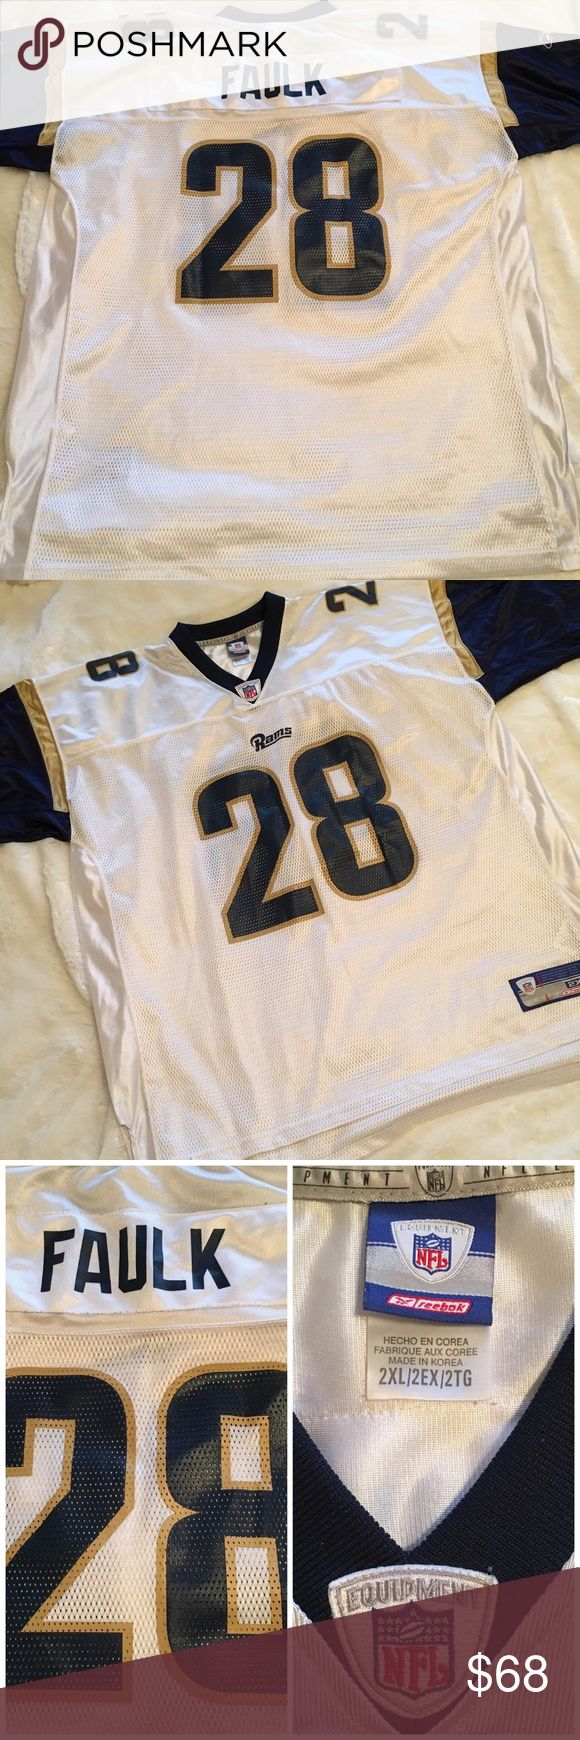 🆕 Retired Rams Marshall Faulk Football Jersey Men's St. Louis Rams Marshall Faulk football jersey. In excellent condition. Small amount of pilling around name on back. Easy fix. Size XXL. ❌NO TRADES ❌NO LOWBALLING❌ Reebok Shirts